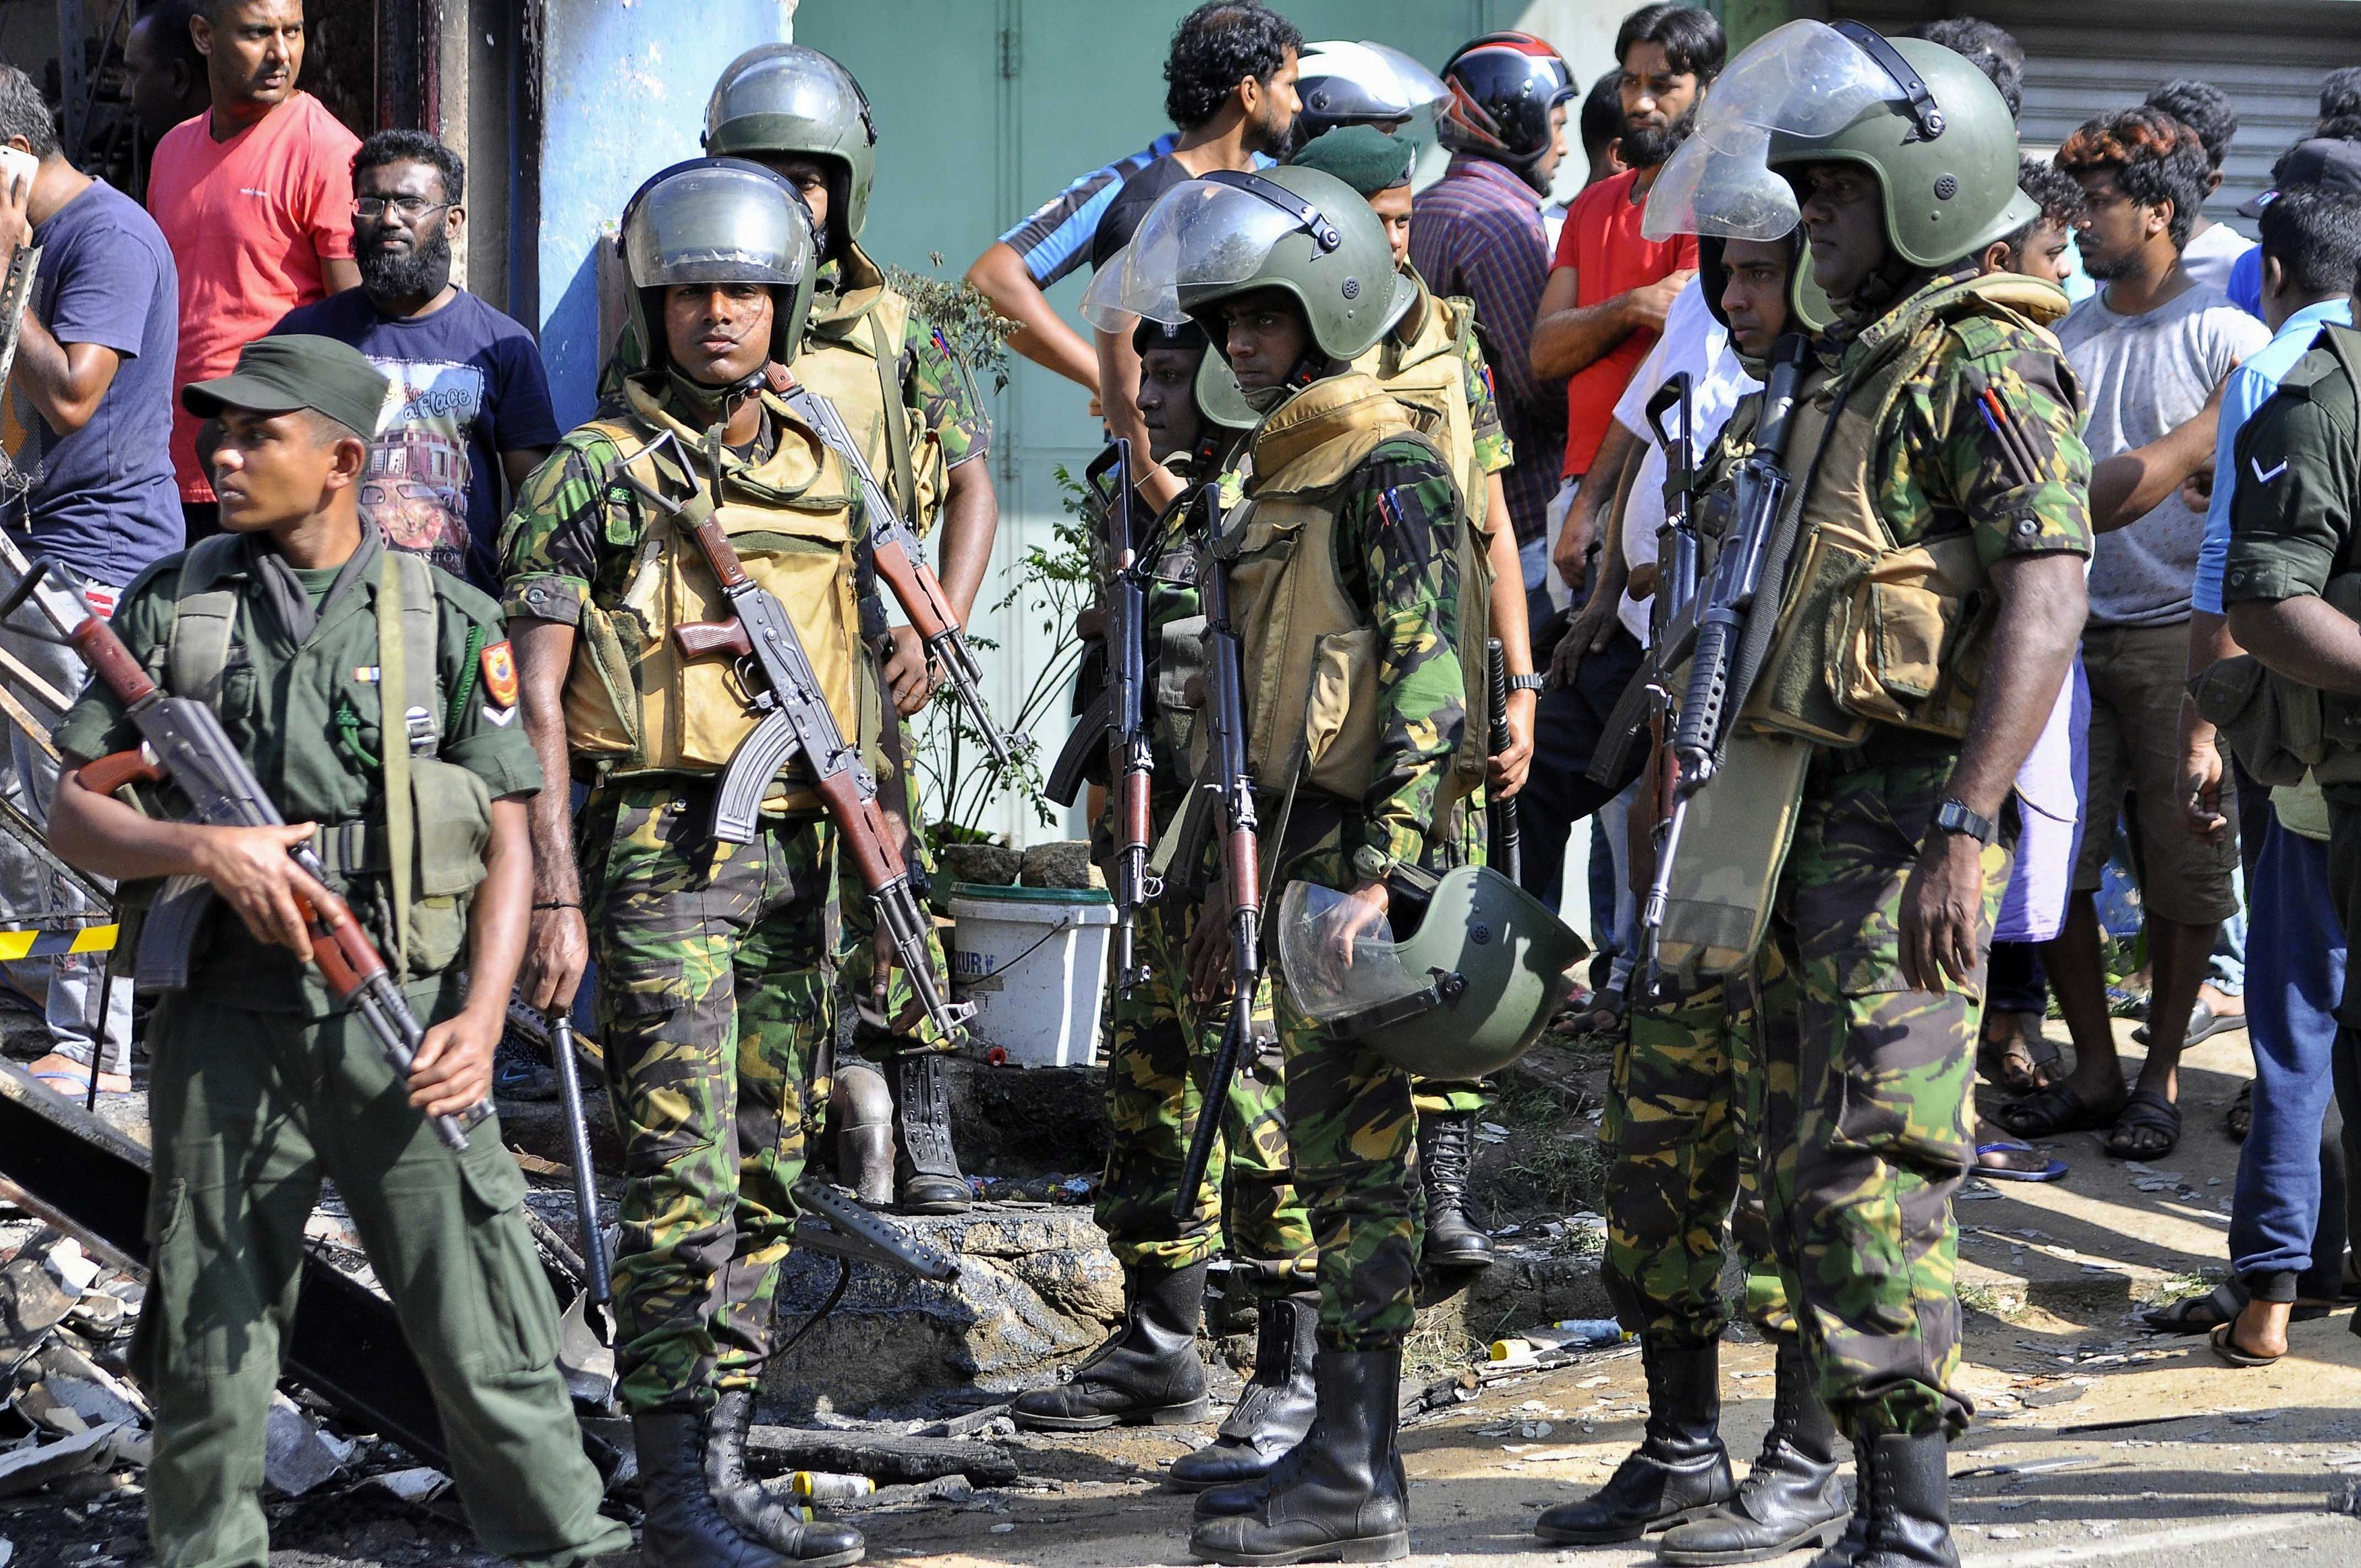 Sri Lankan police commandos patrol on the streets of Pallekele, a suburb of Kandy, on March 6, 2018, following anti-Muslim riots that has prompted the government to declare a state of emergency. Sri Lanka on March 6 declared a nationwide state of emergency to quell anti-Muslim riots that have killed at least two people and damaged dozens of mosques and homes. The curfew in the district was extended after the body of a Muslim man was pulled from the ashes of a burnt building, threatening to further raise communal tensions that have flared up across Sri Lanka in recent weeks.  / AFP PHOTO / -        (Photo credit should read -/AFP/Getty Images)